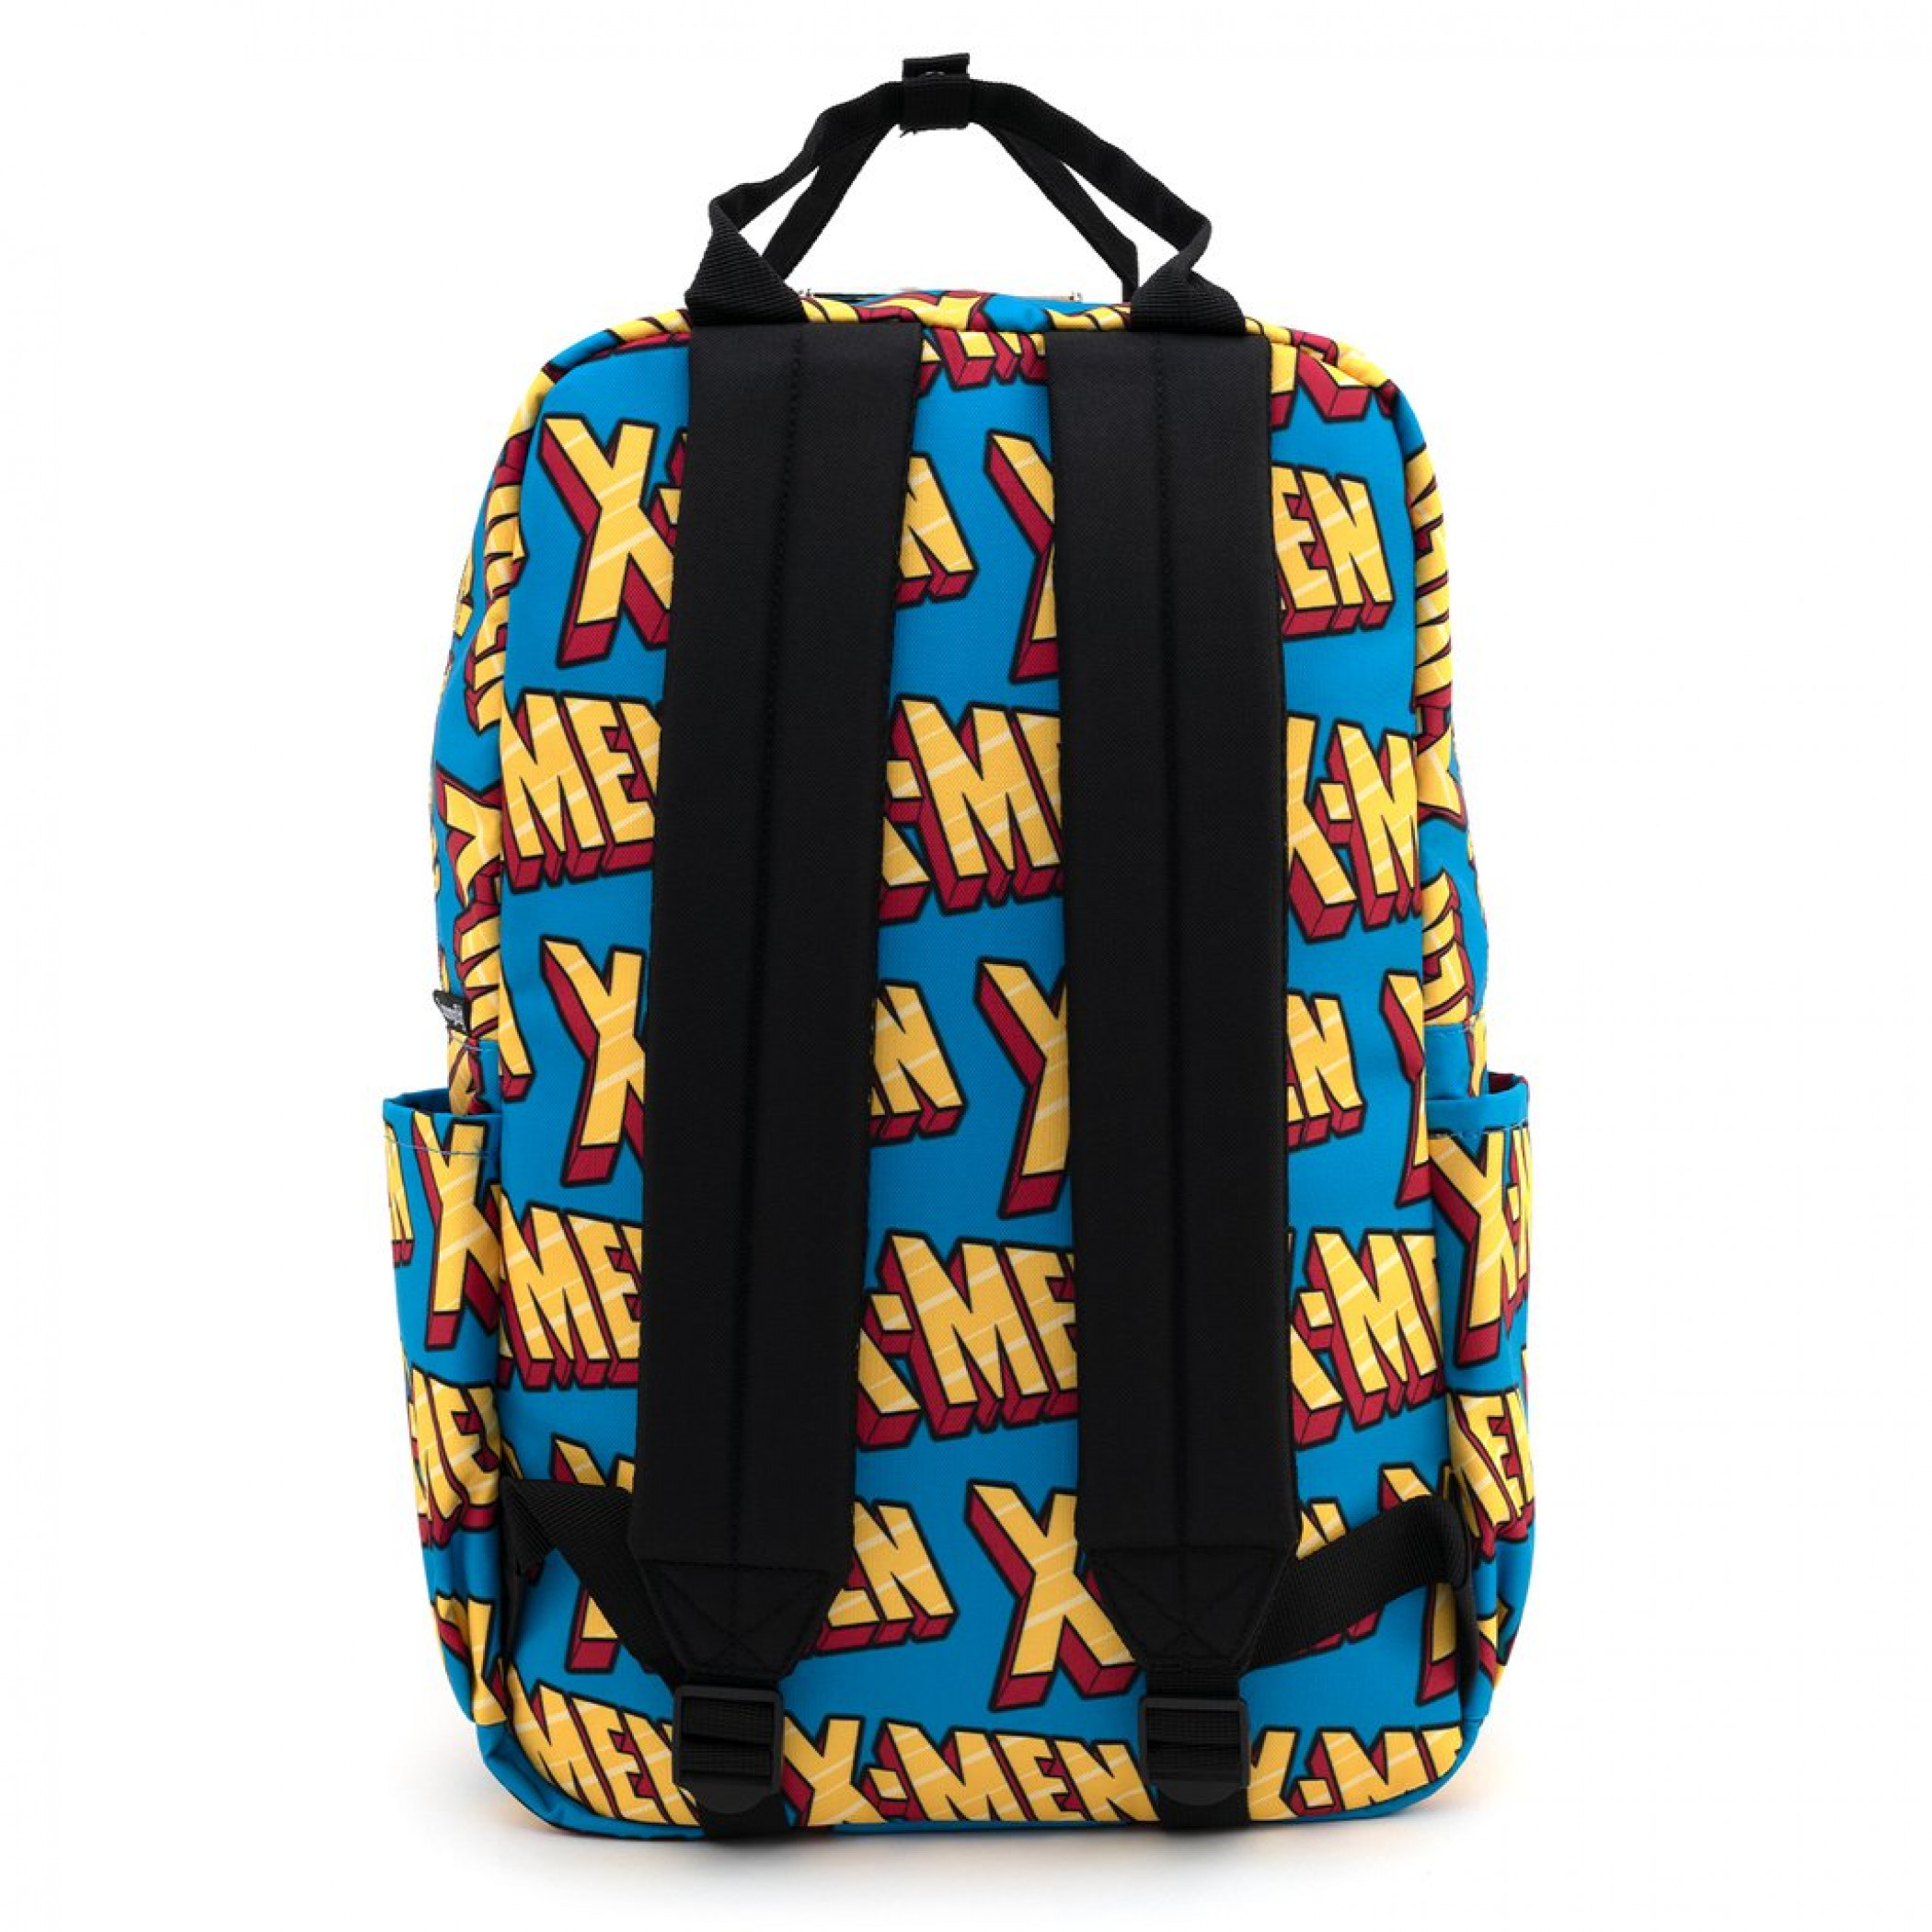 X-Men Logo All Over Print Nylon Backpack by Loungefly